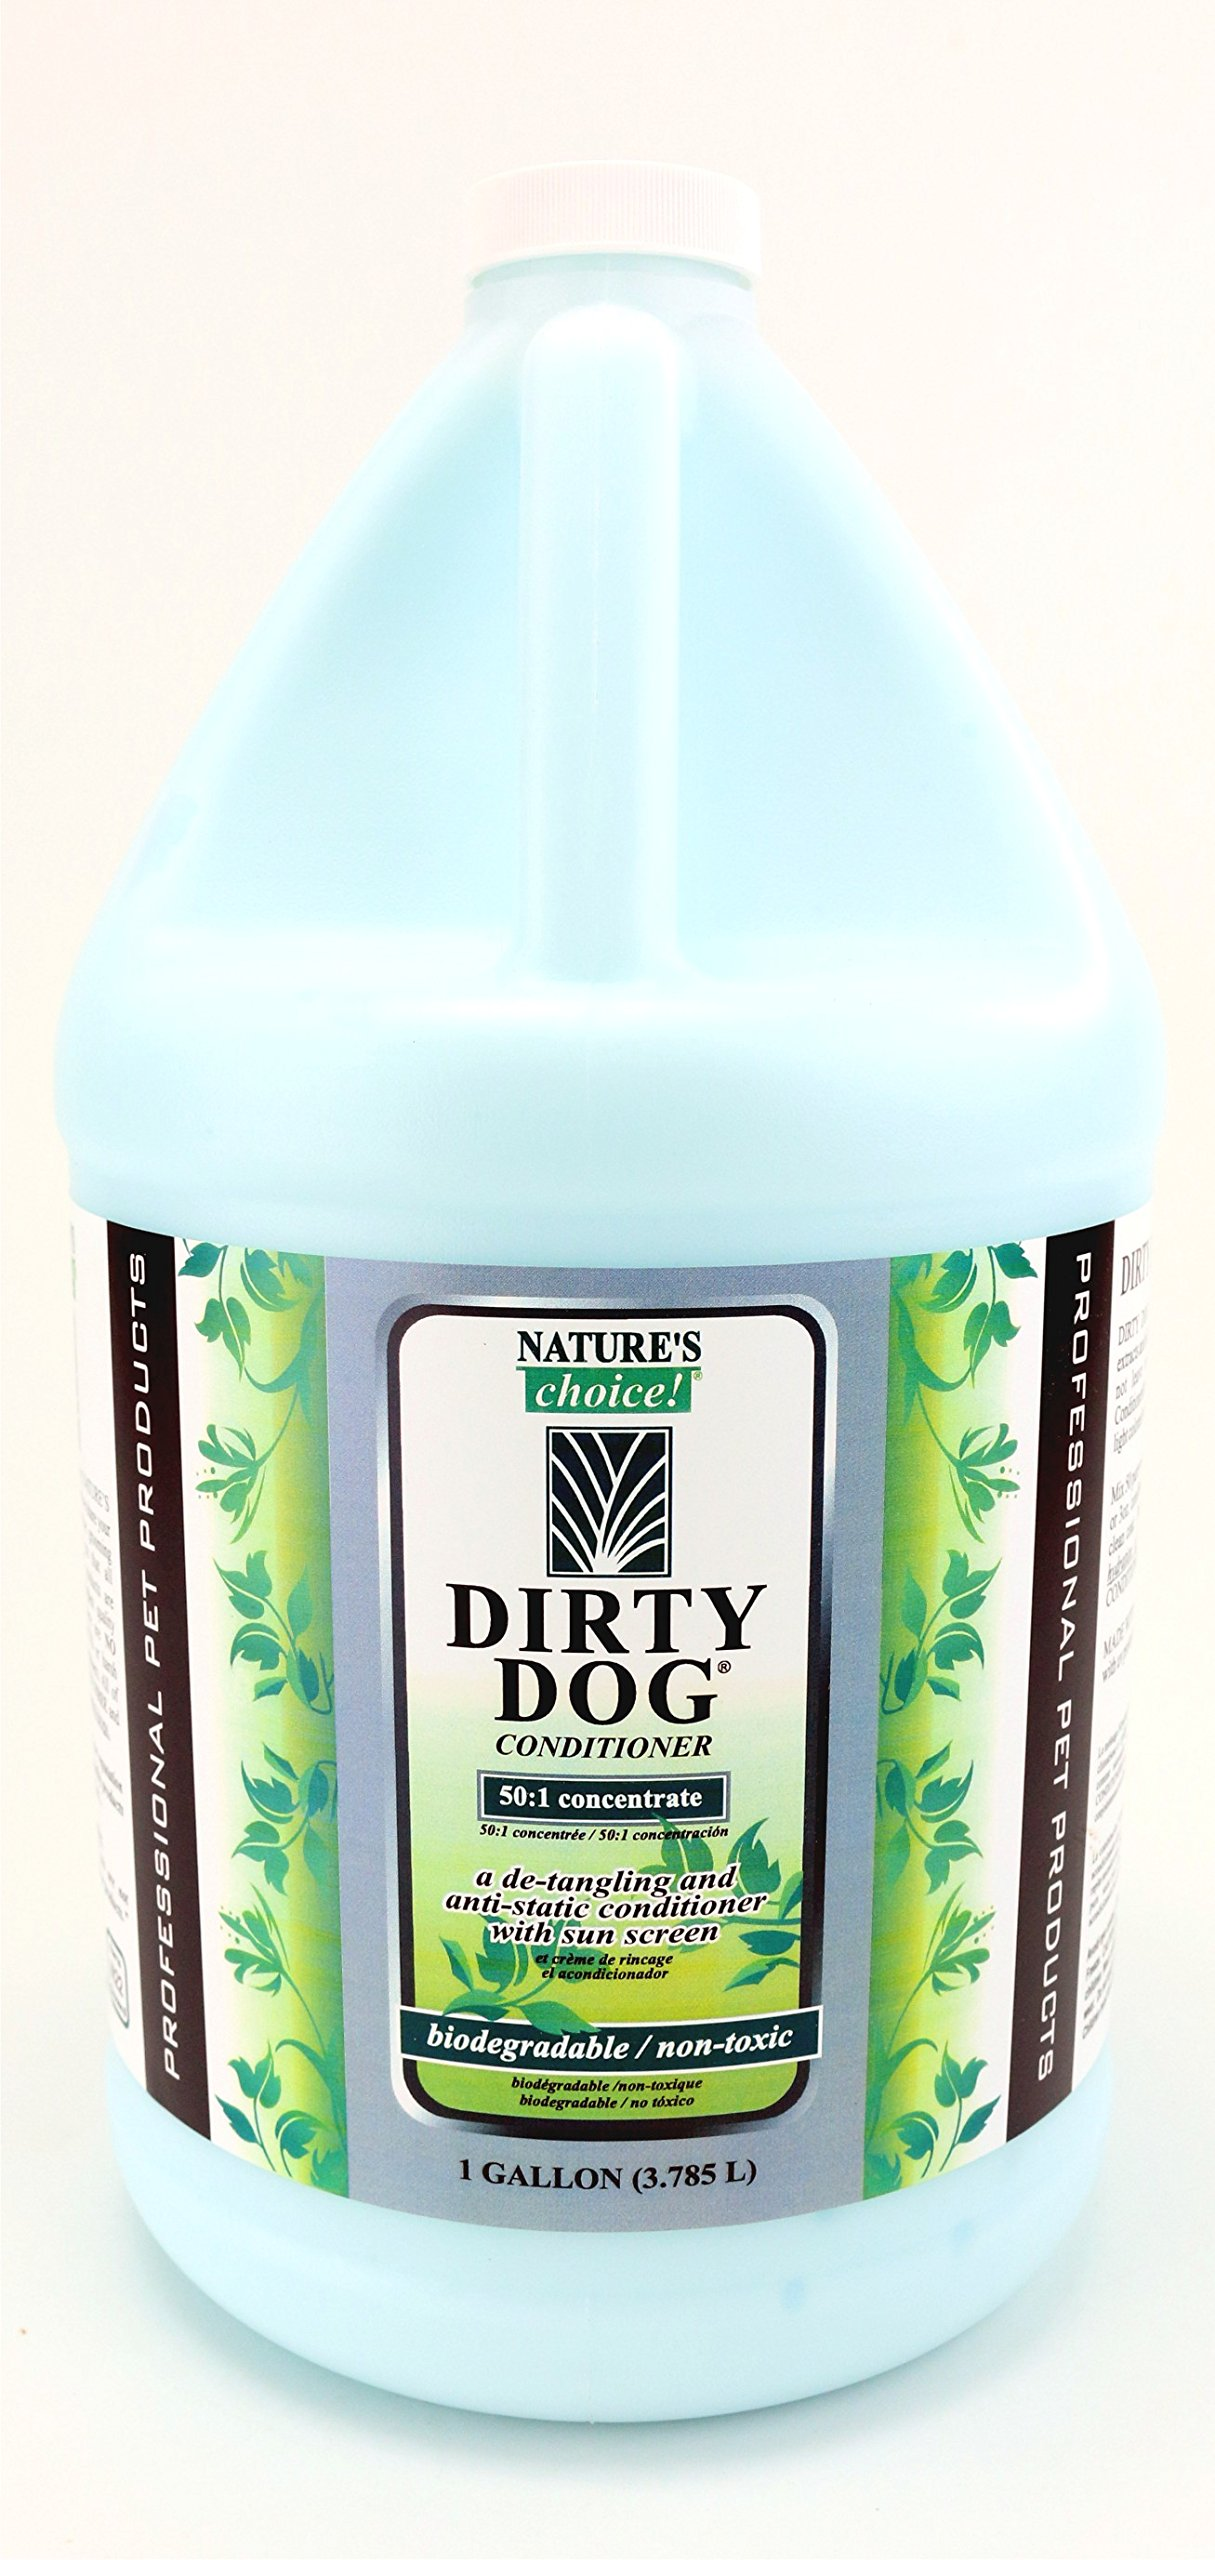 Nature's Choice Dirty Dog Conditioner 50:1 Gallon by Nature's Choice